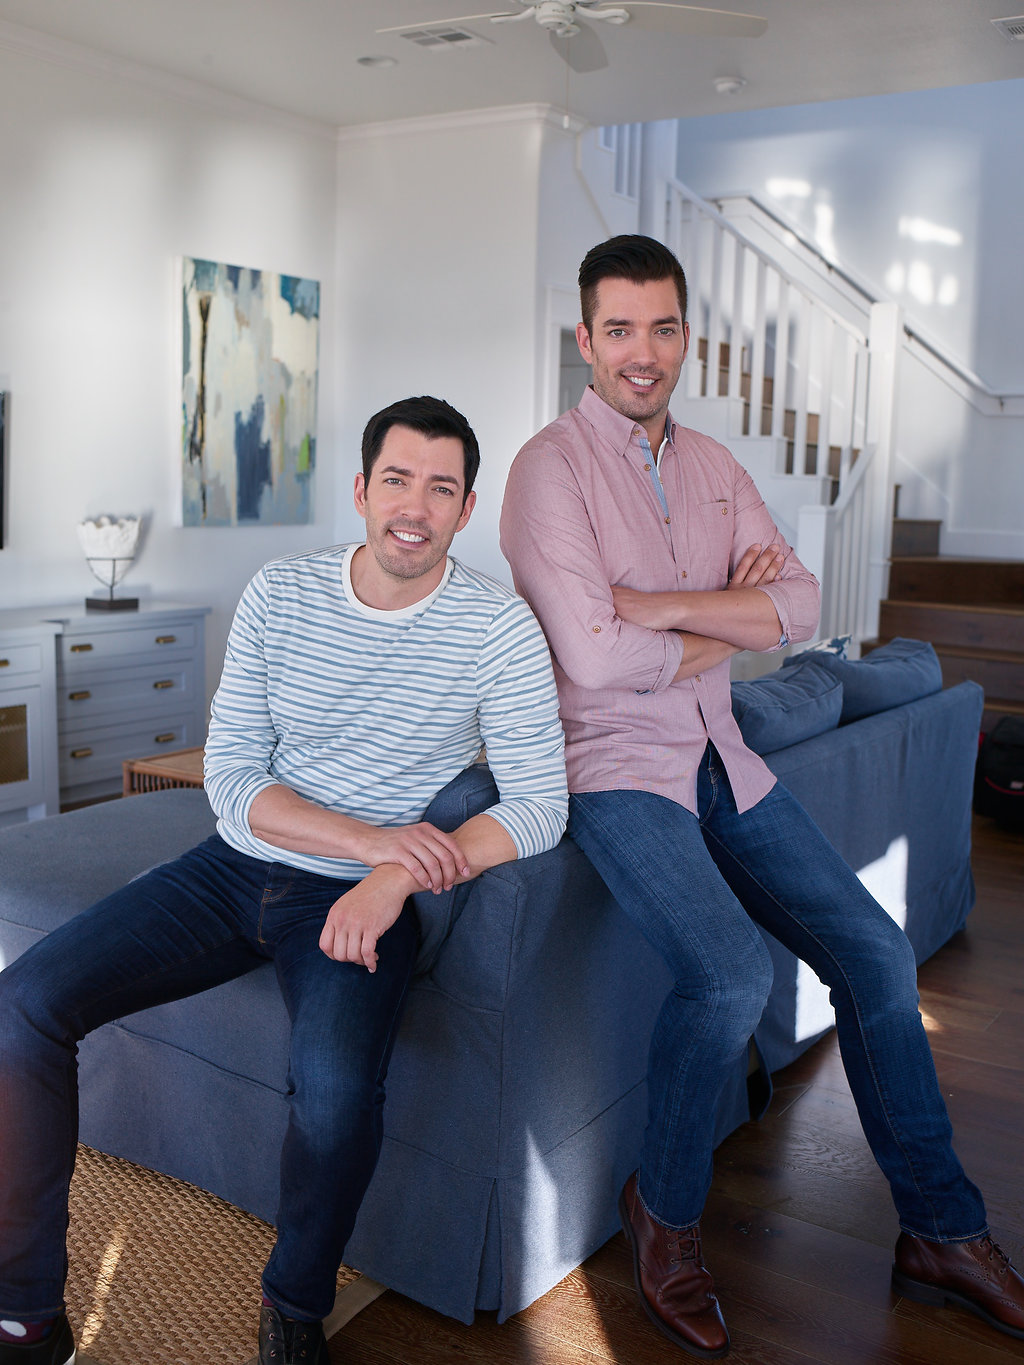 Jonathan and Drew Scott sitting on a couch